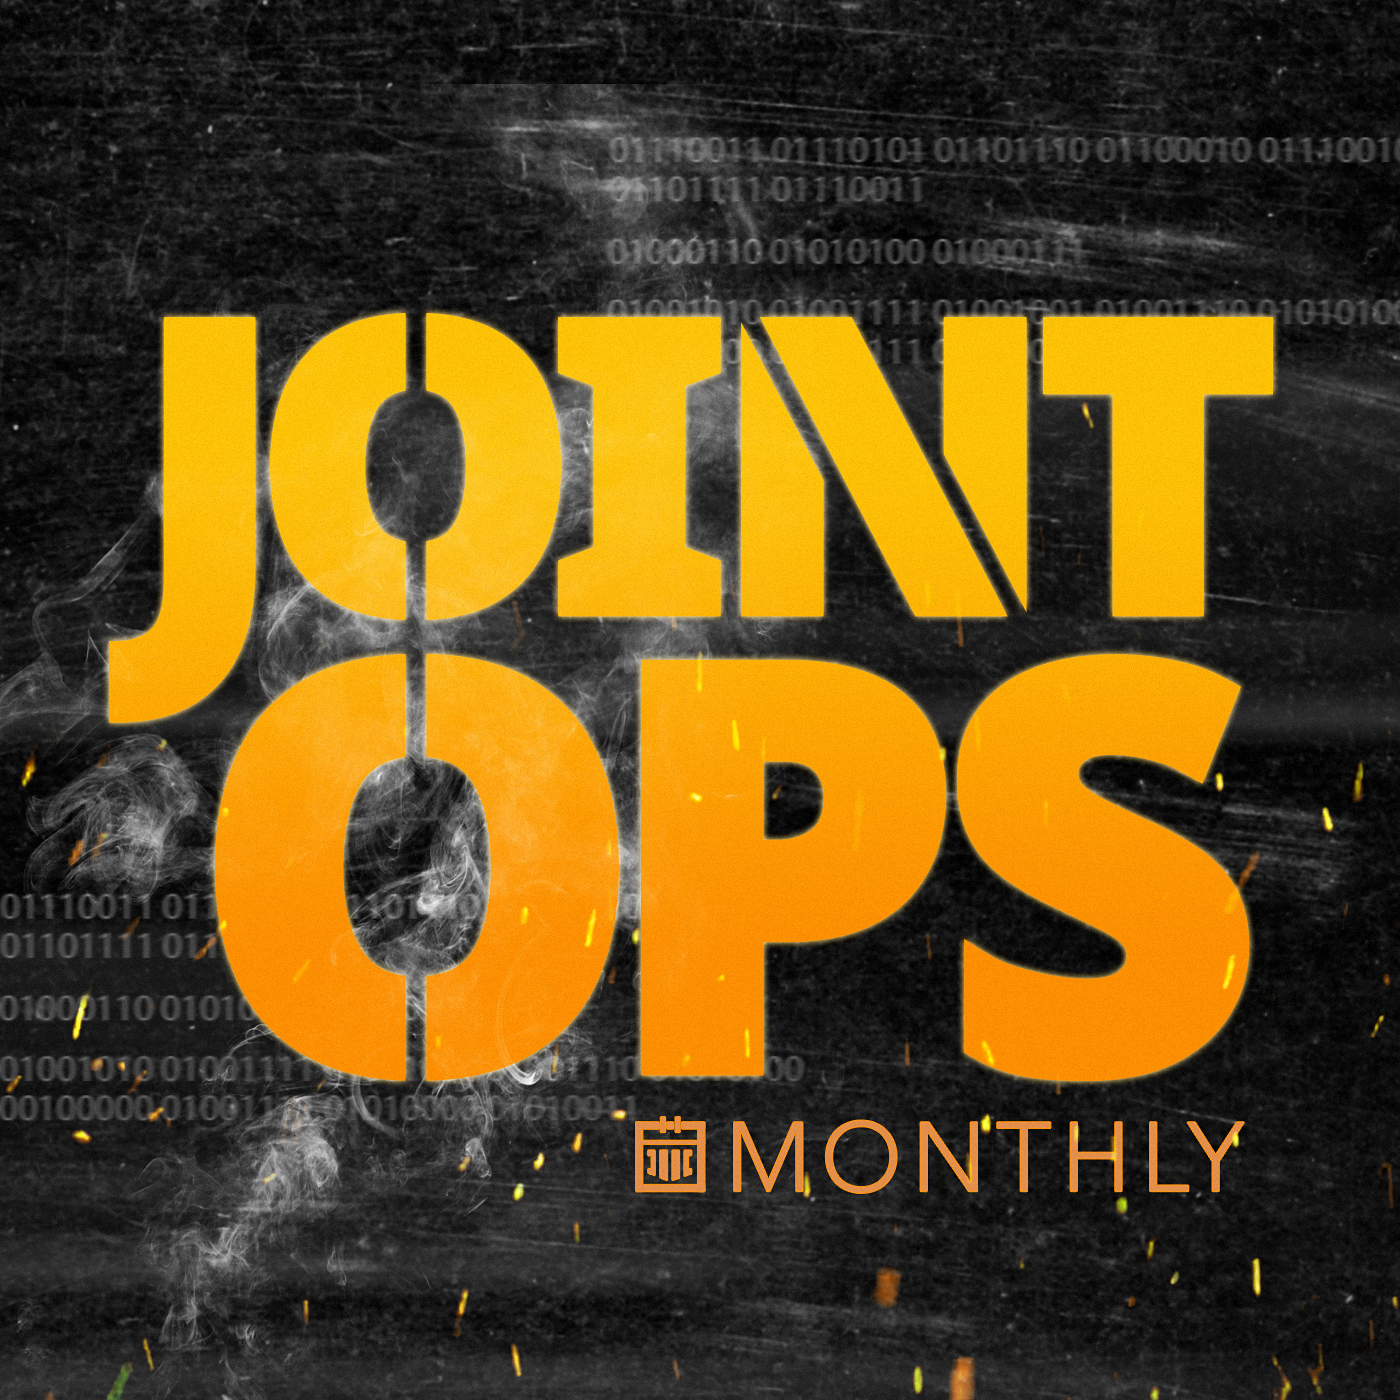 Joint Ops Destiny: The Unofficial Destiny Podcast » Podcast Feed